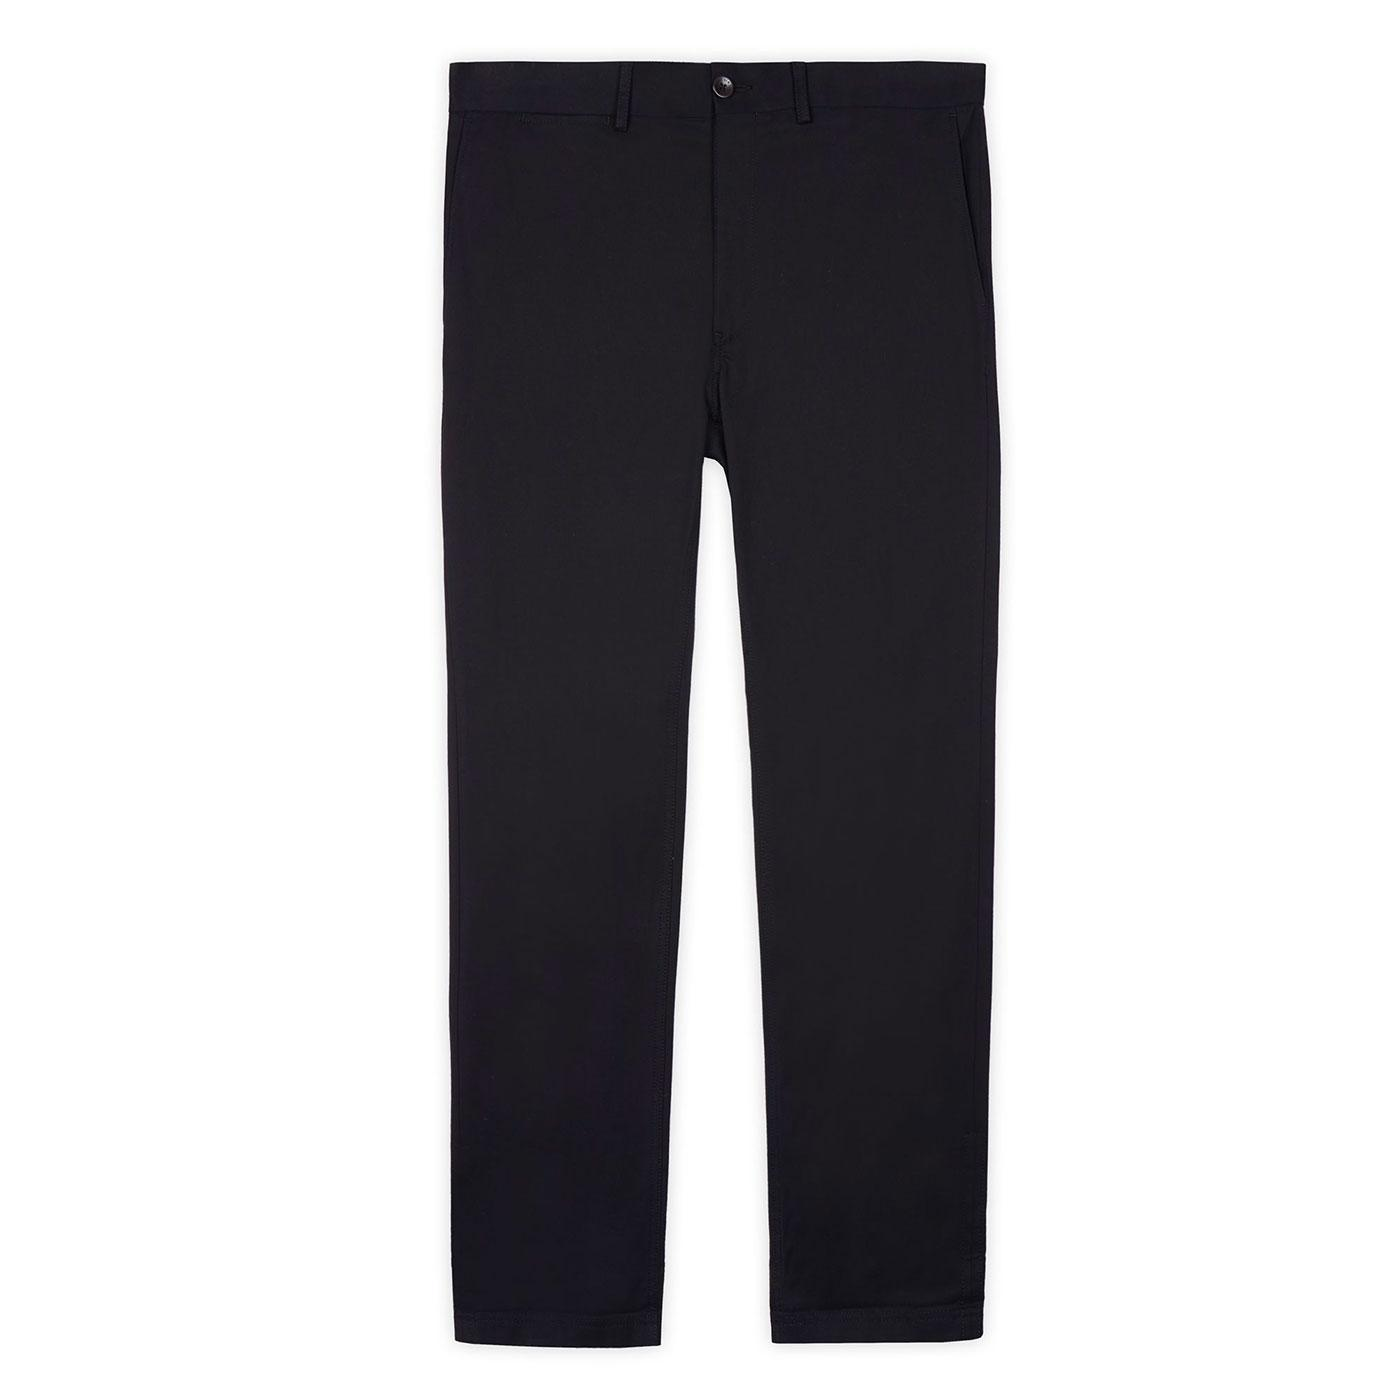 BEN SHERMAN Mens Signature Chino Trousers in Black